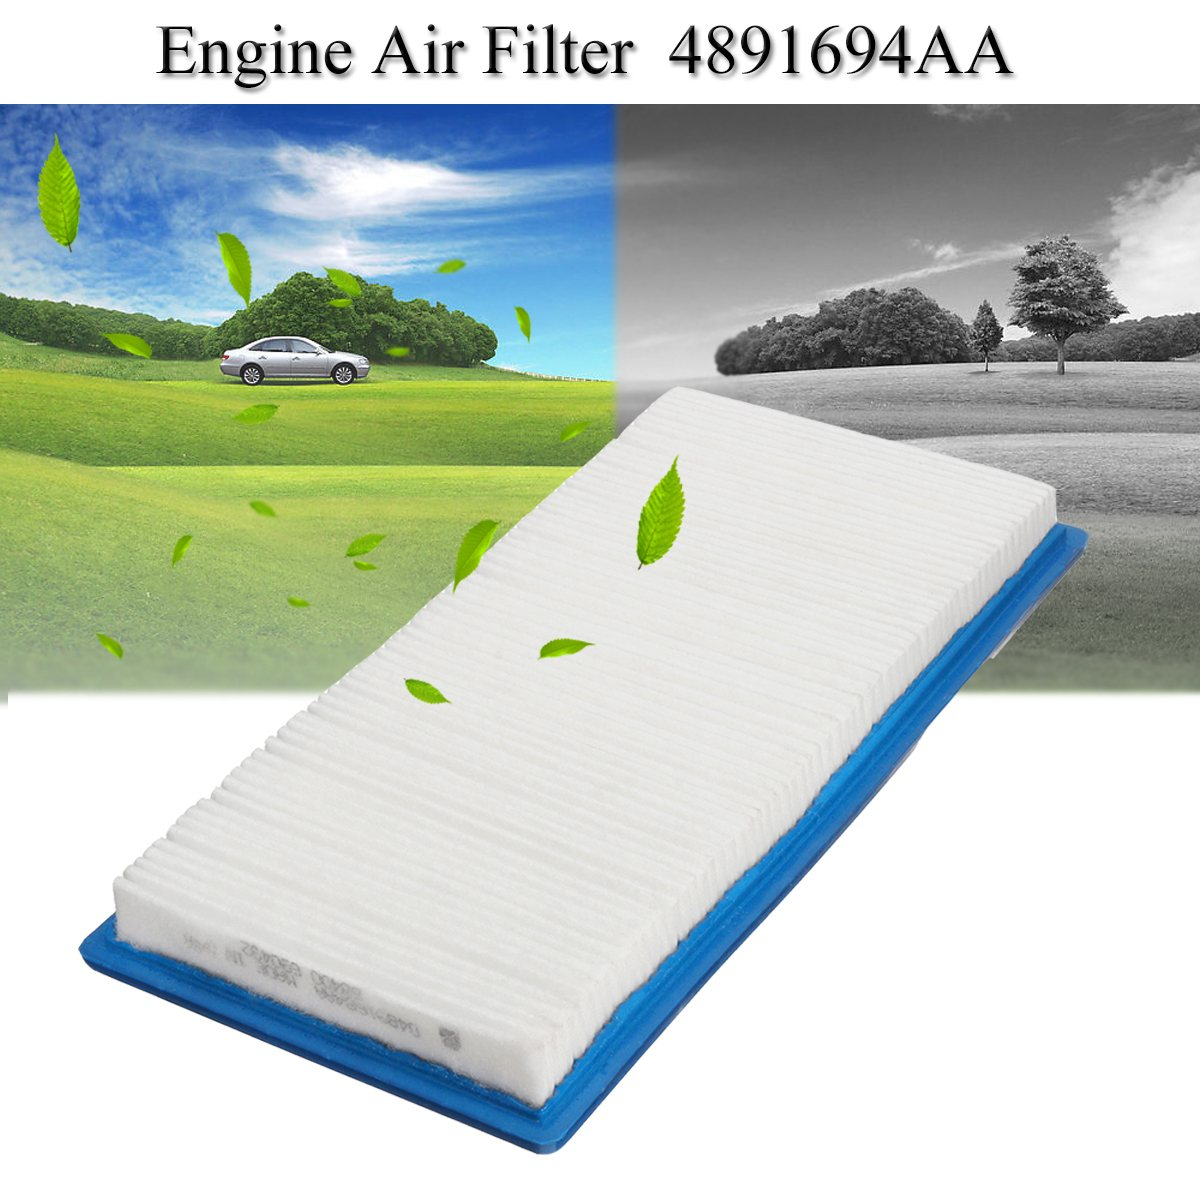 Engine Air Filter For Jeep Compass Patriot Dodge Caliber 2007 2010 Fuel Location 4891694aa In Filters From Automobiles Motorcycles On Alibaba